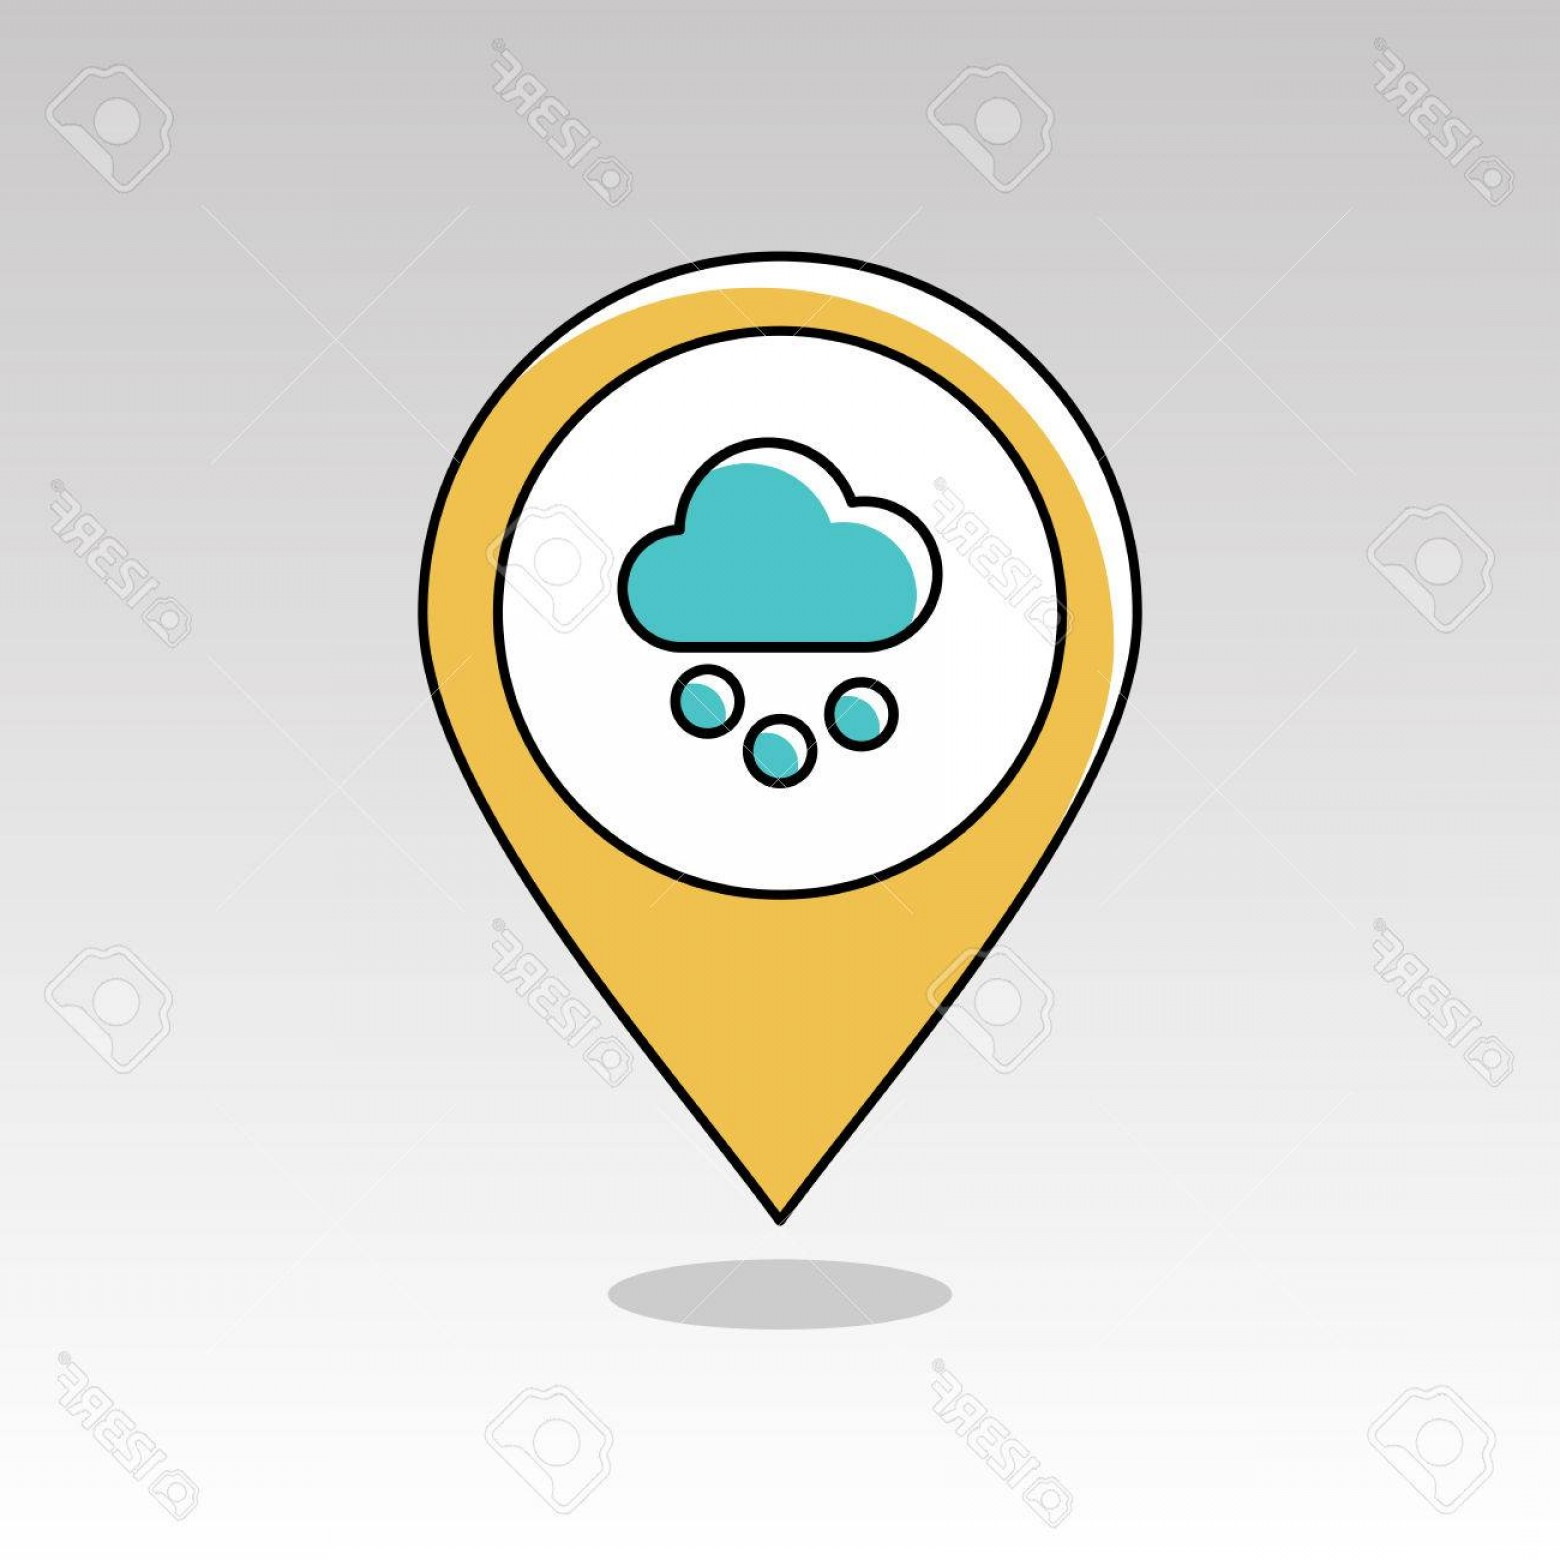 Snow Cone Outline Vector: Photostock Vector Cloud With Snow Grain Outline Pin Map Icon Map Pointer Map Markers Meteorology Weather Vector Illust